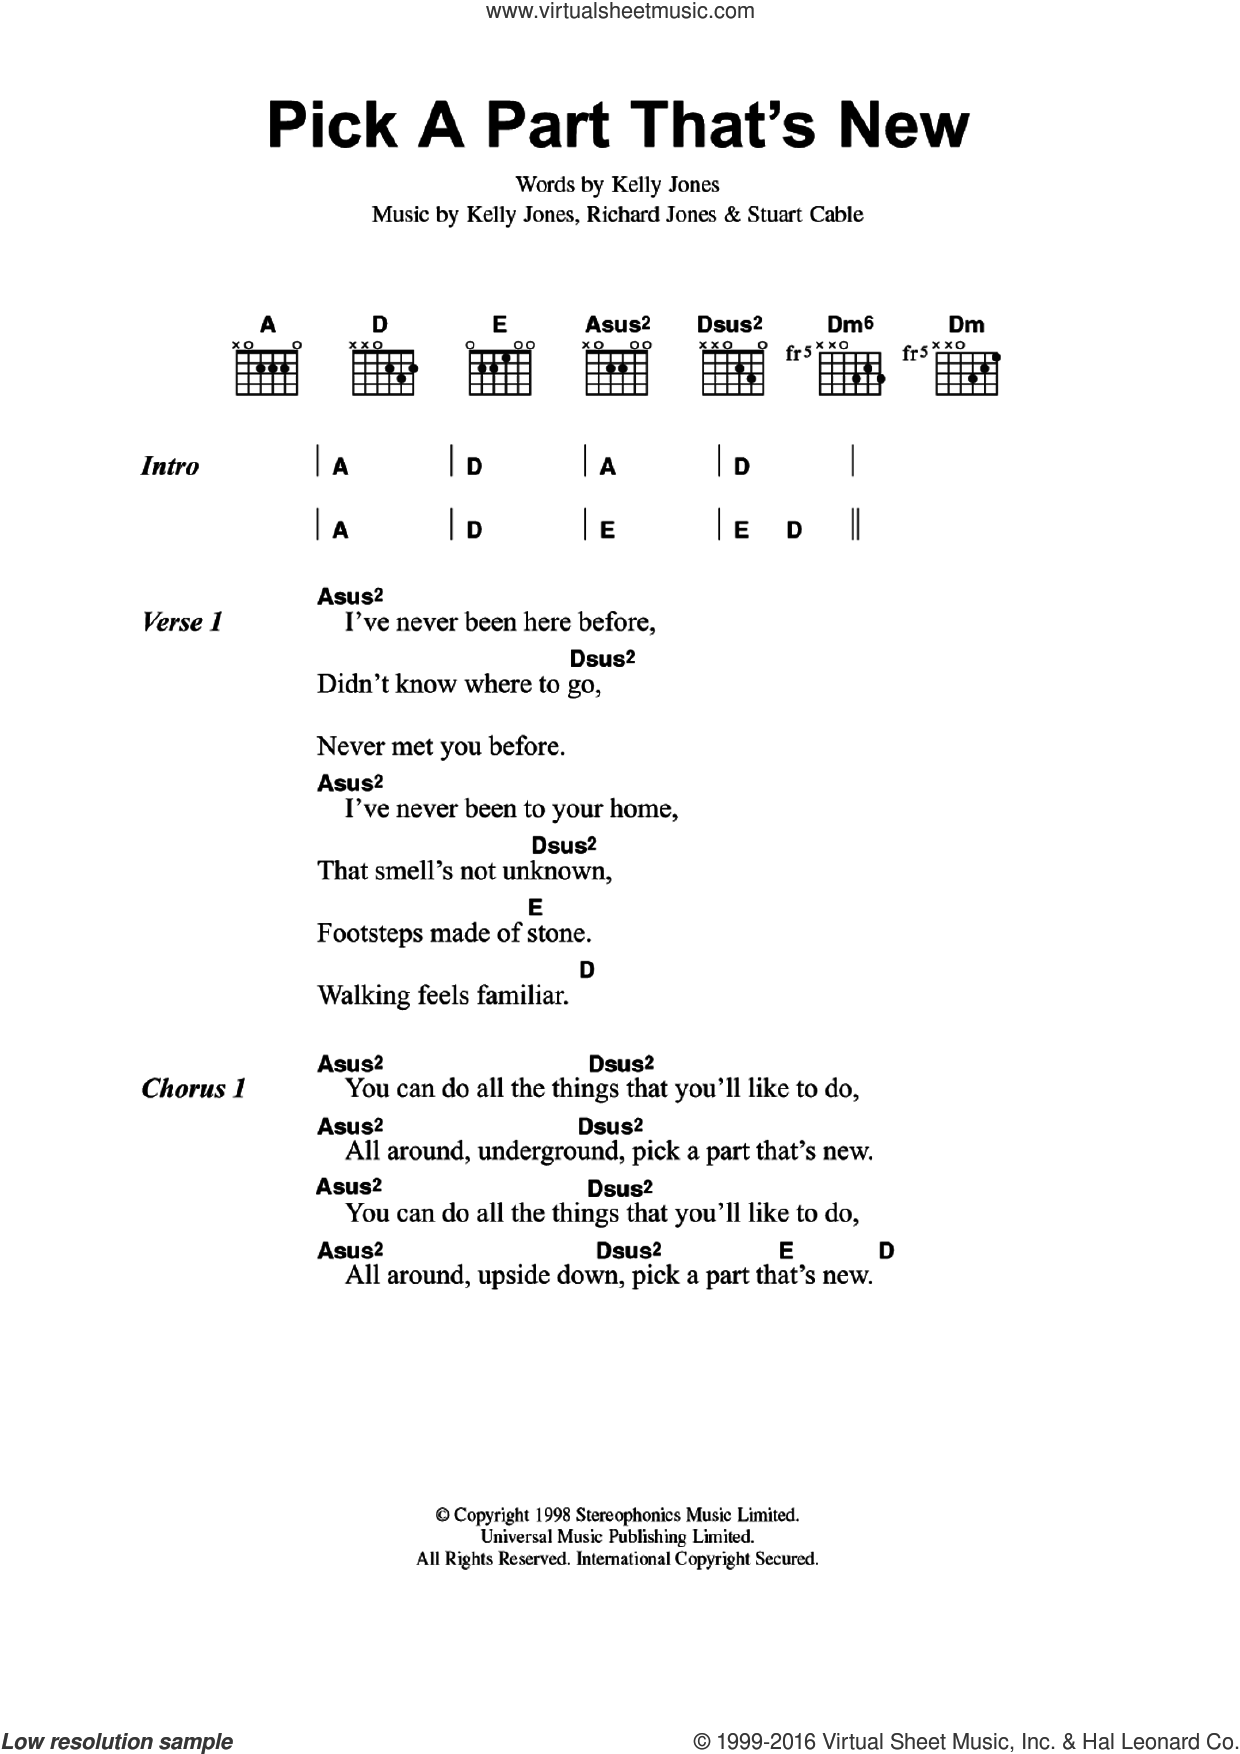 Pick A Part That's New sheet music for guitar (chords) by Stereophonics, Kelly Jones, Richard Jones and Stuart Cable, intermediate skill level